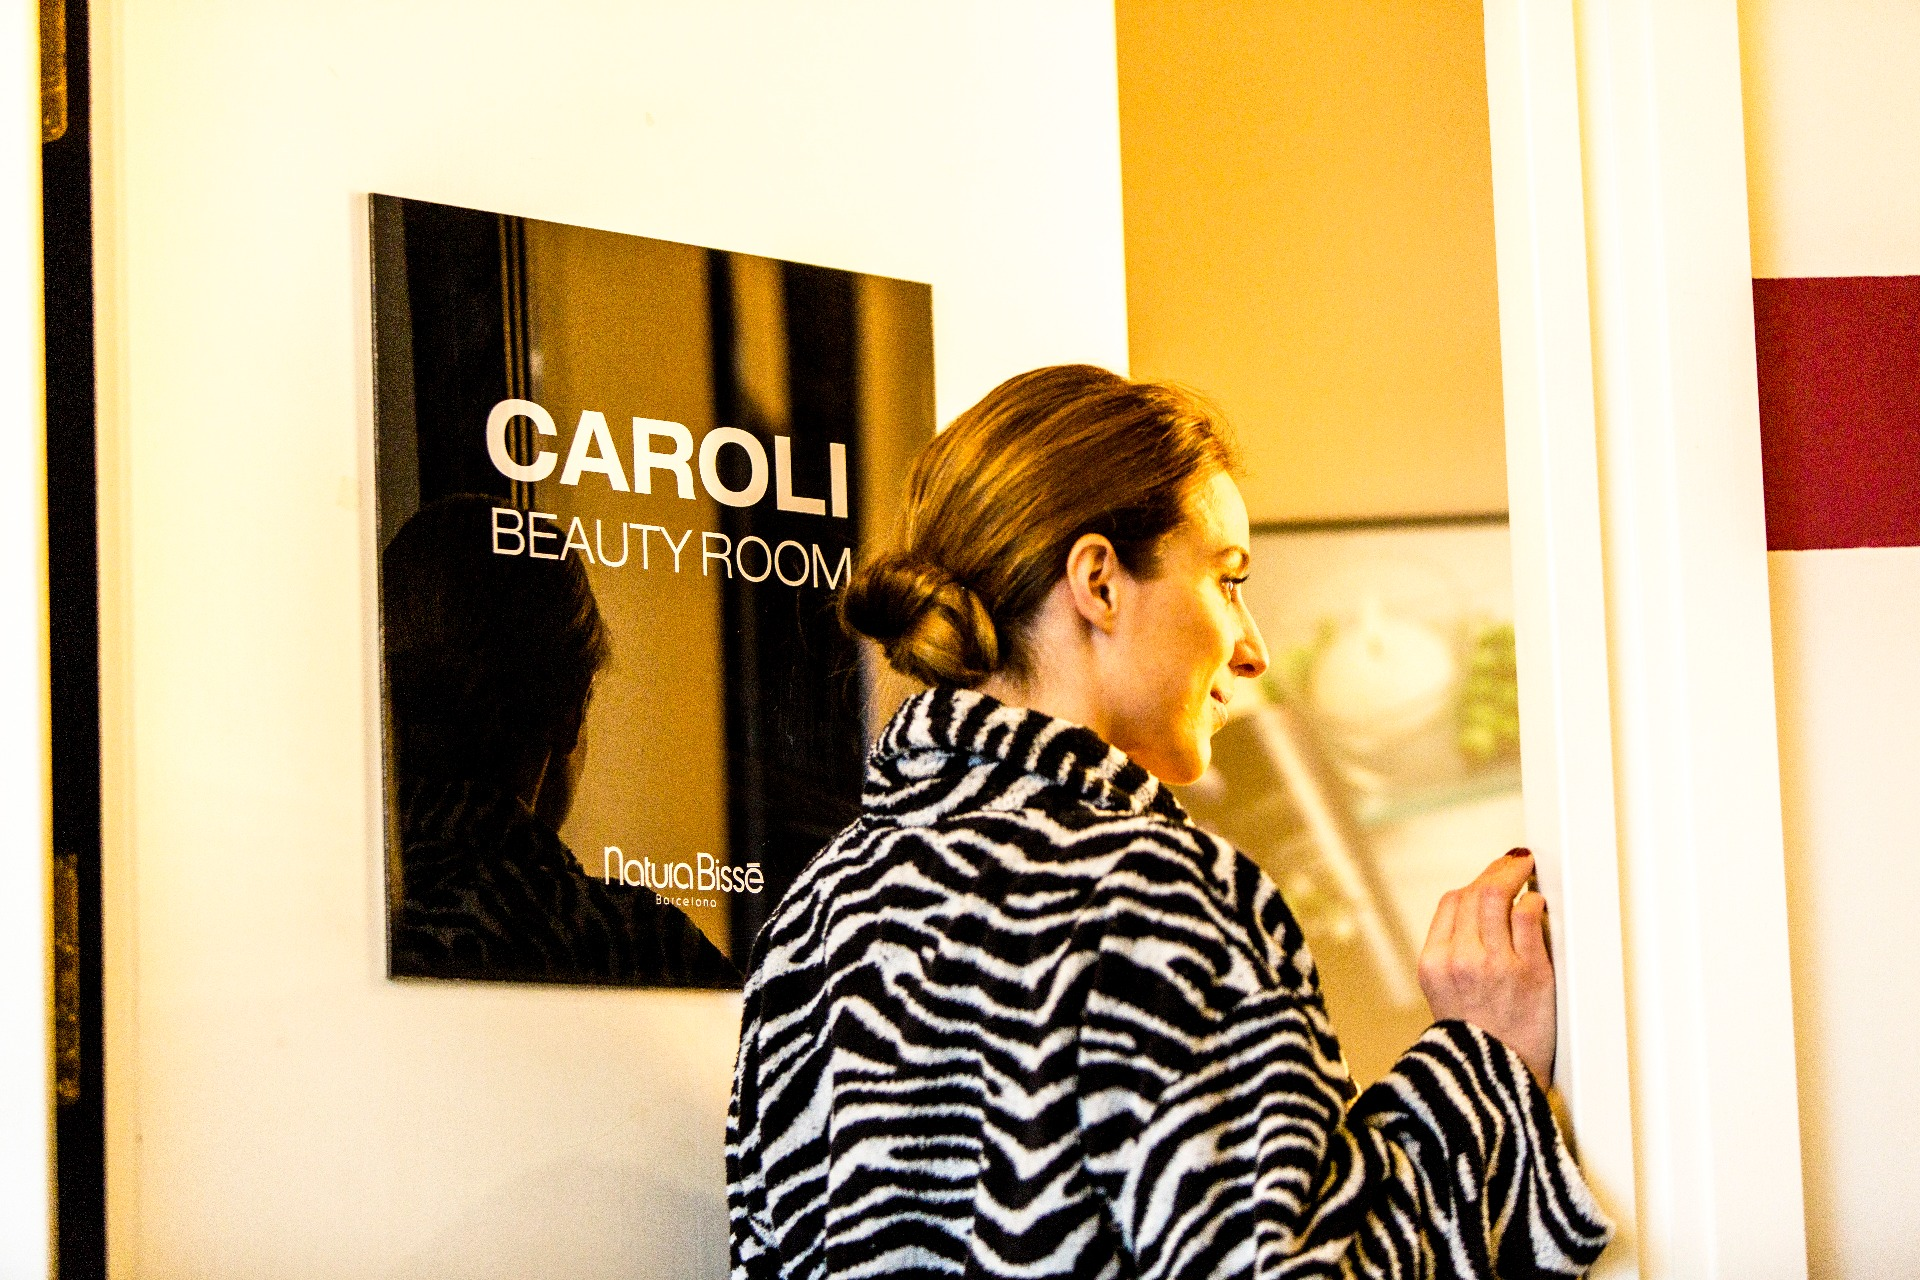 Beauty Room Caroli - Only You Hotel Atocha